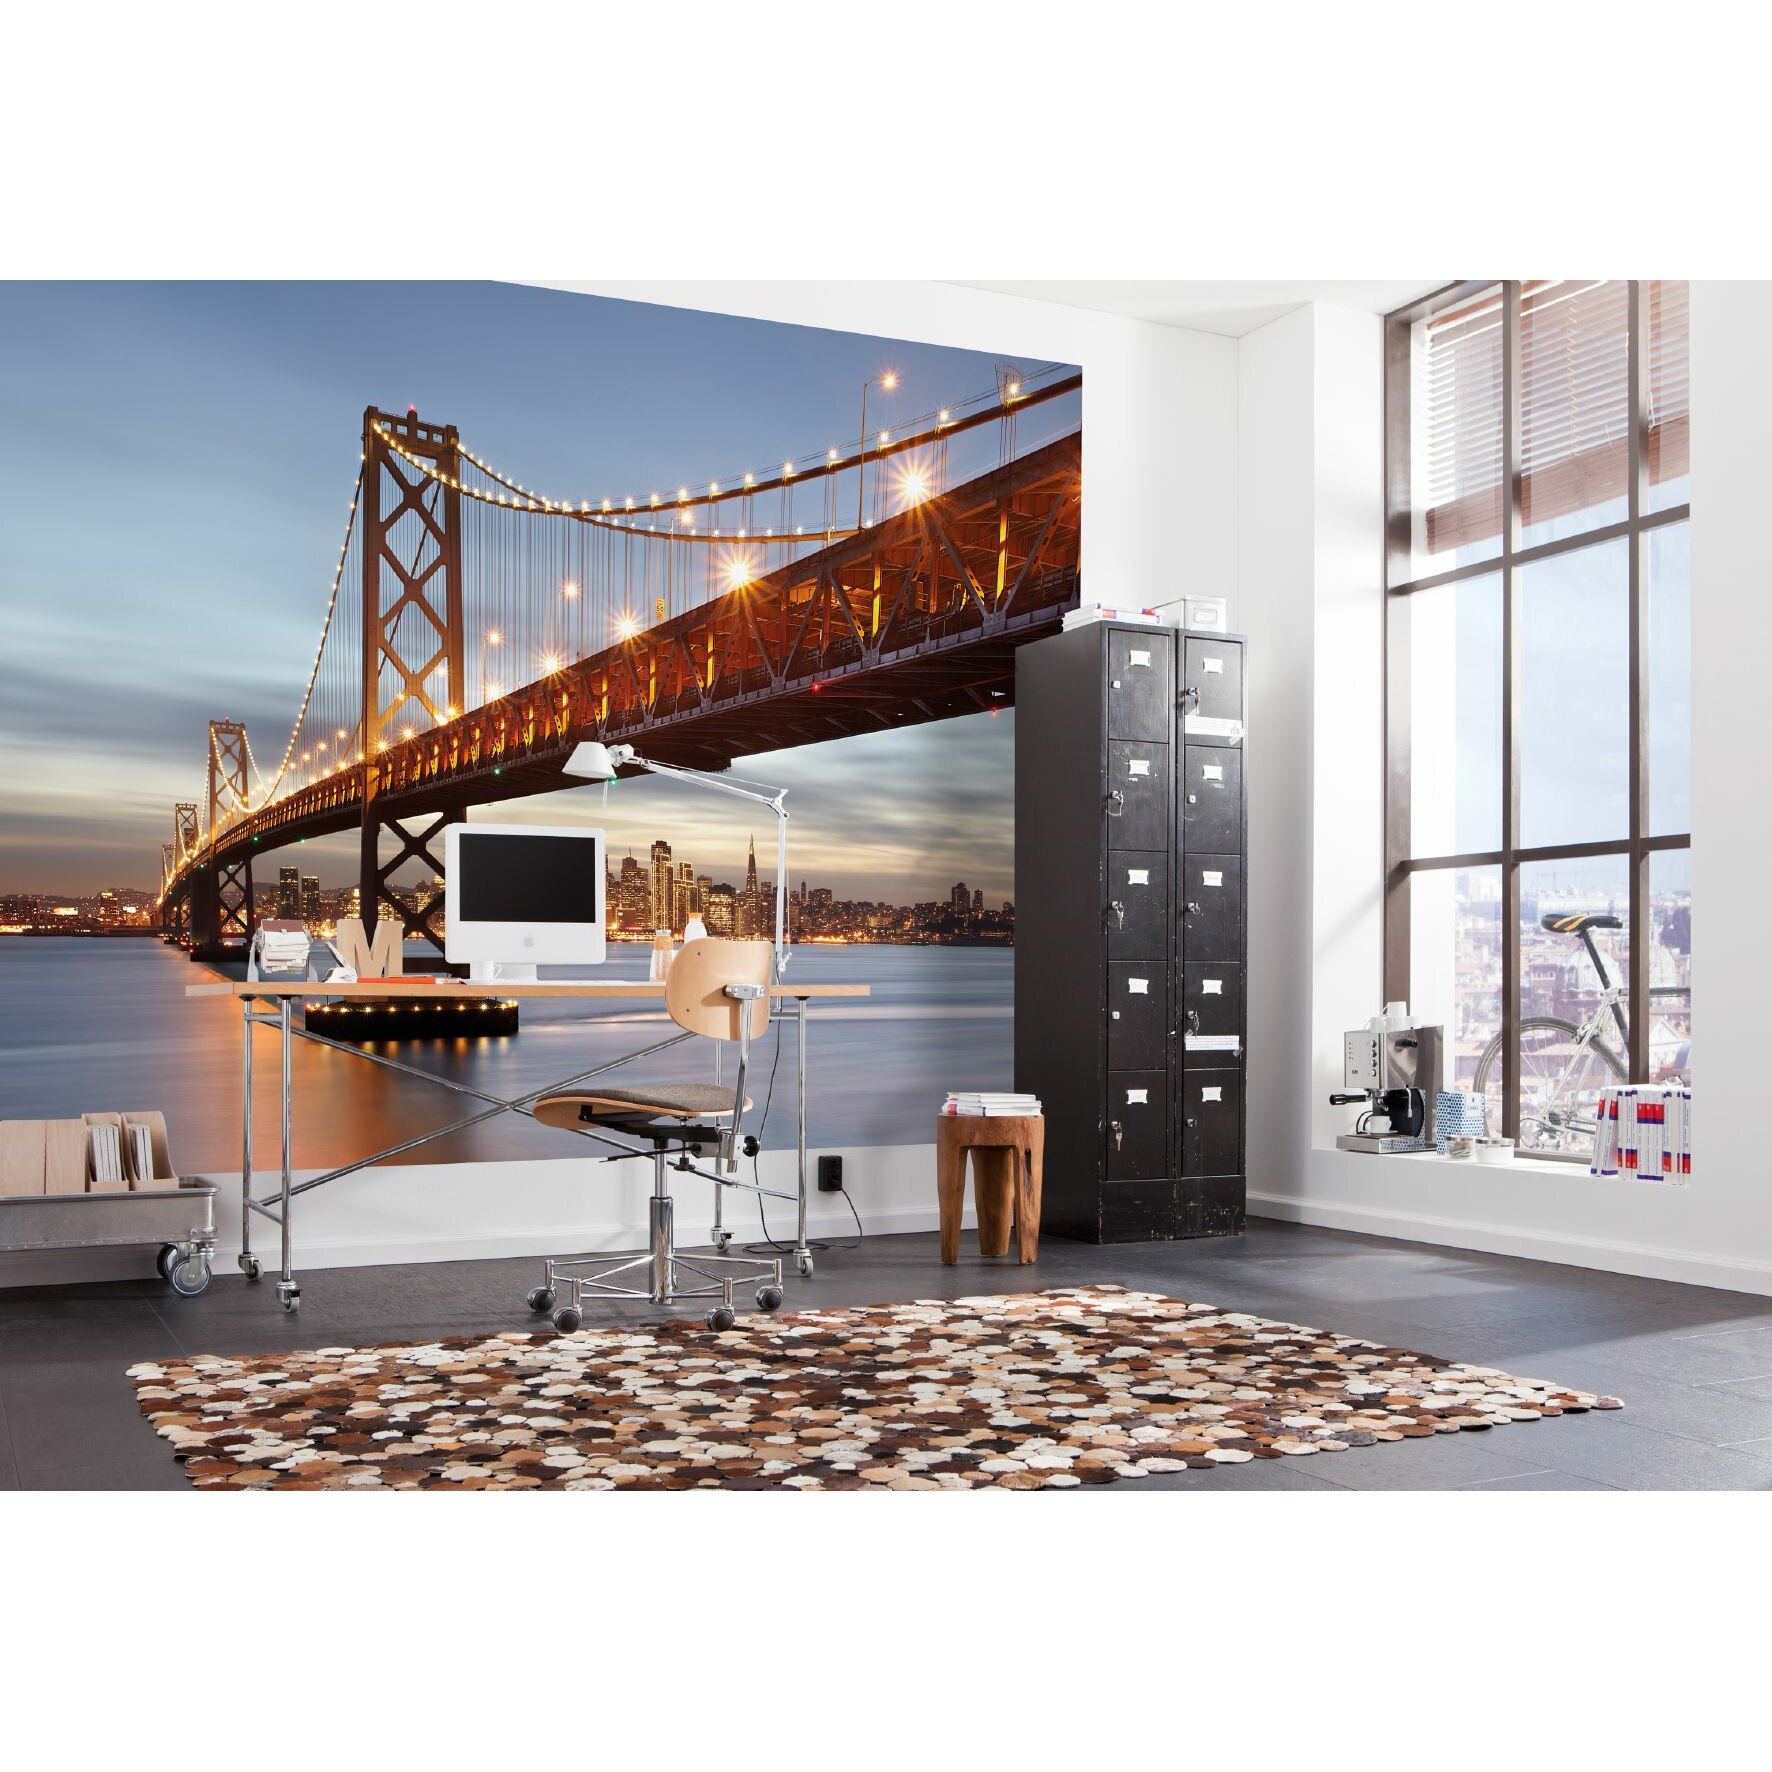 Brewster home fashions komar bay bridge wall mural for Brewster home fashions wall mural